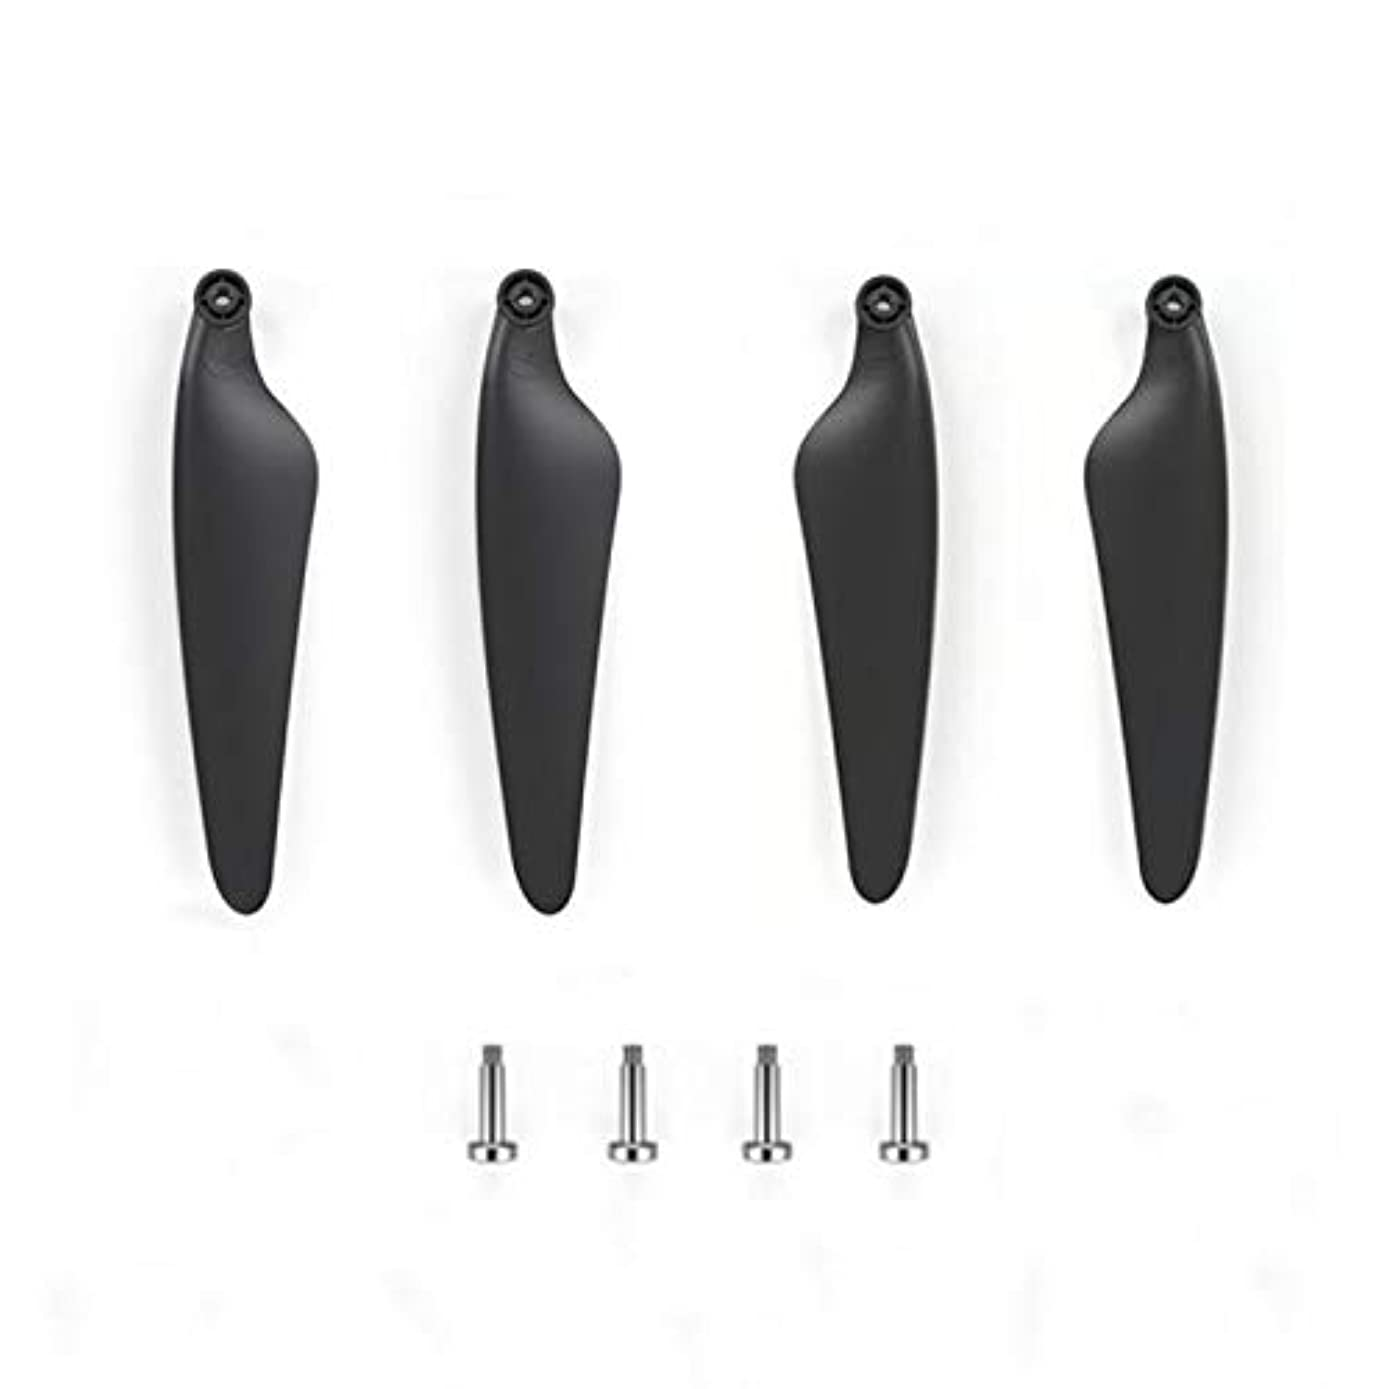 Propeller Set - Durable and Lightweight Parts Crash Pack Propeller for Hubsan Zino H117S GPS RC Drone (4Pcs) (?? Black)